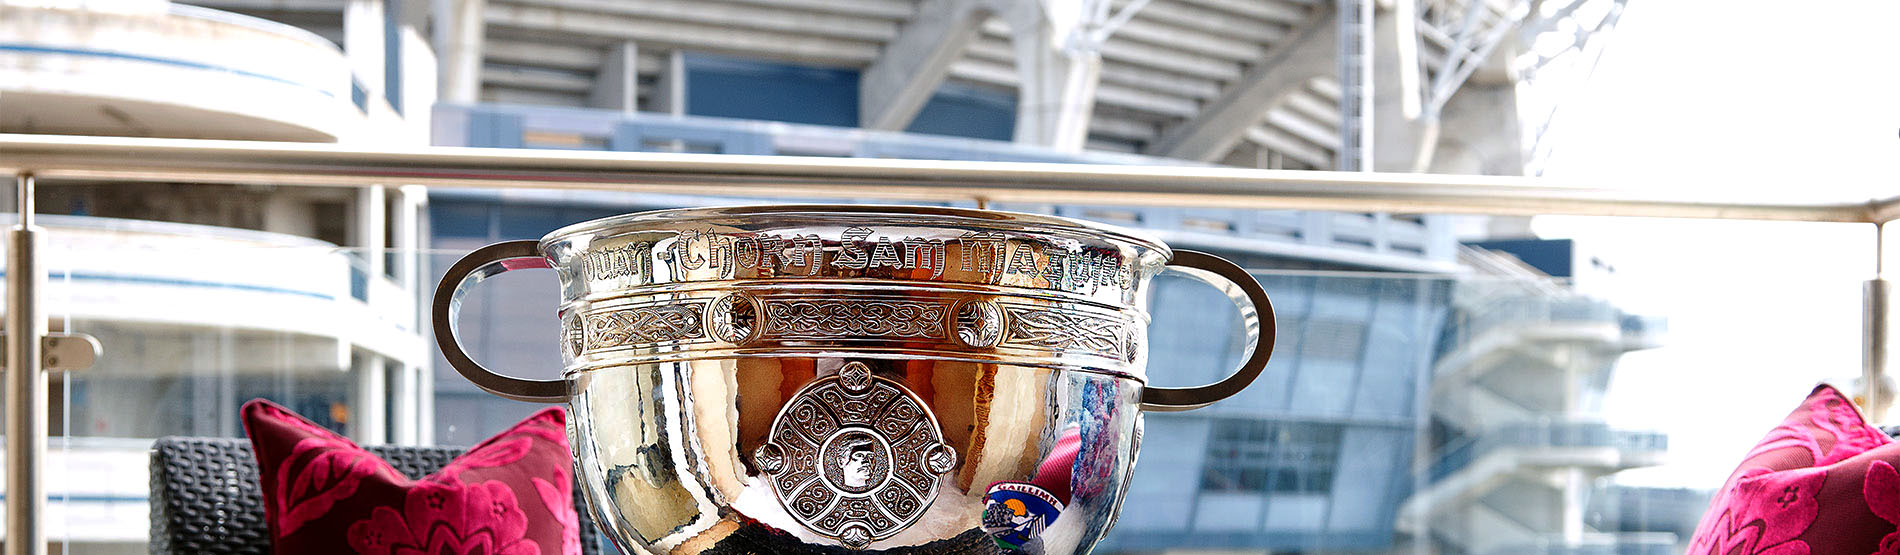 A silver trophy in the Croke Park stadium